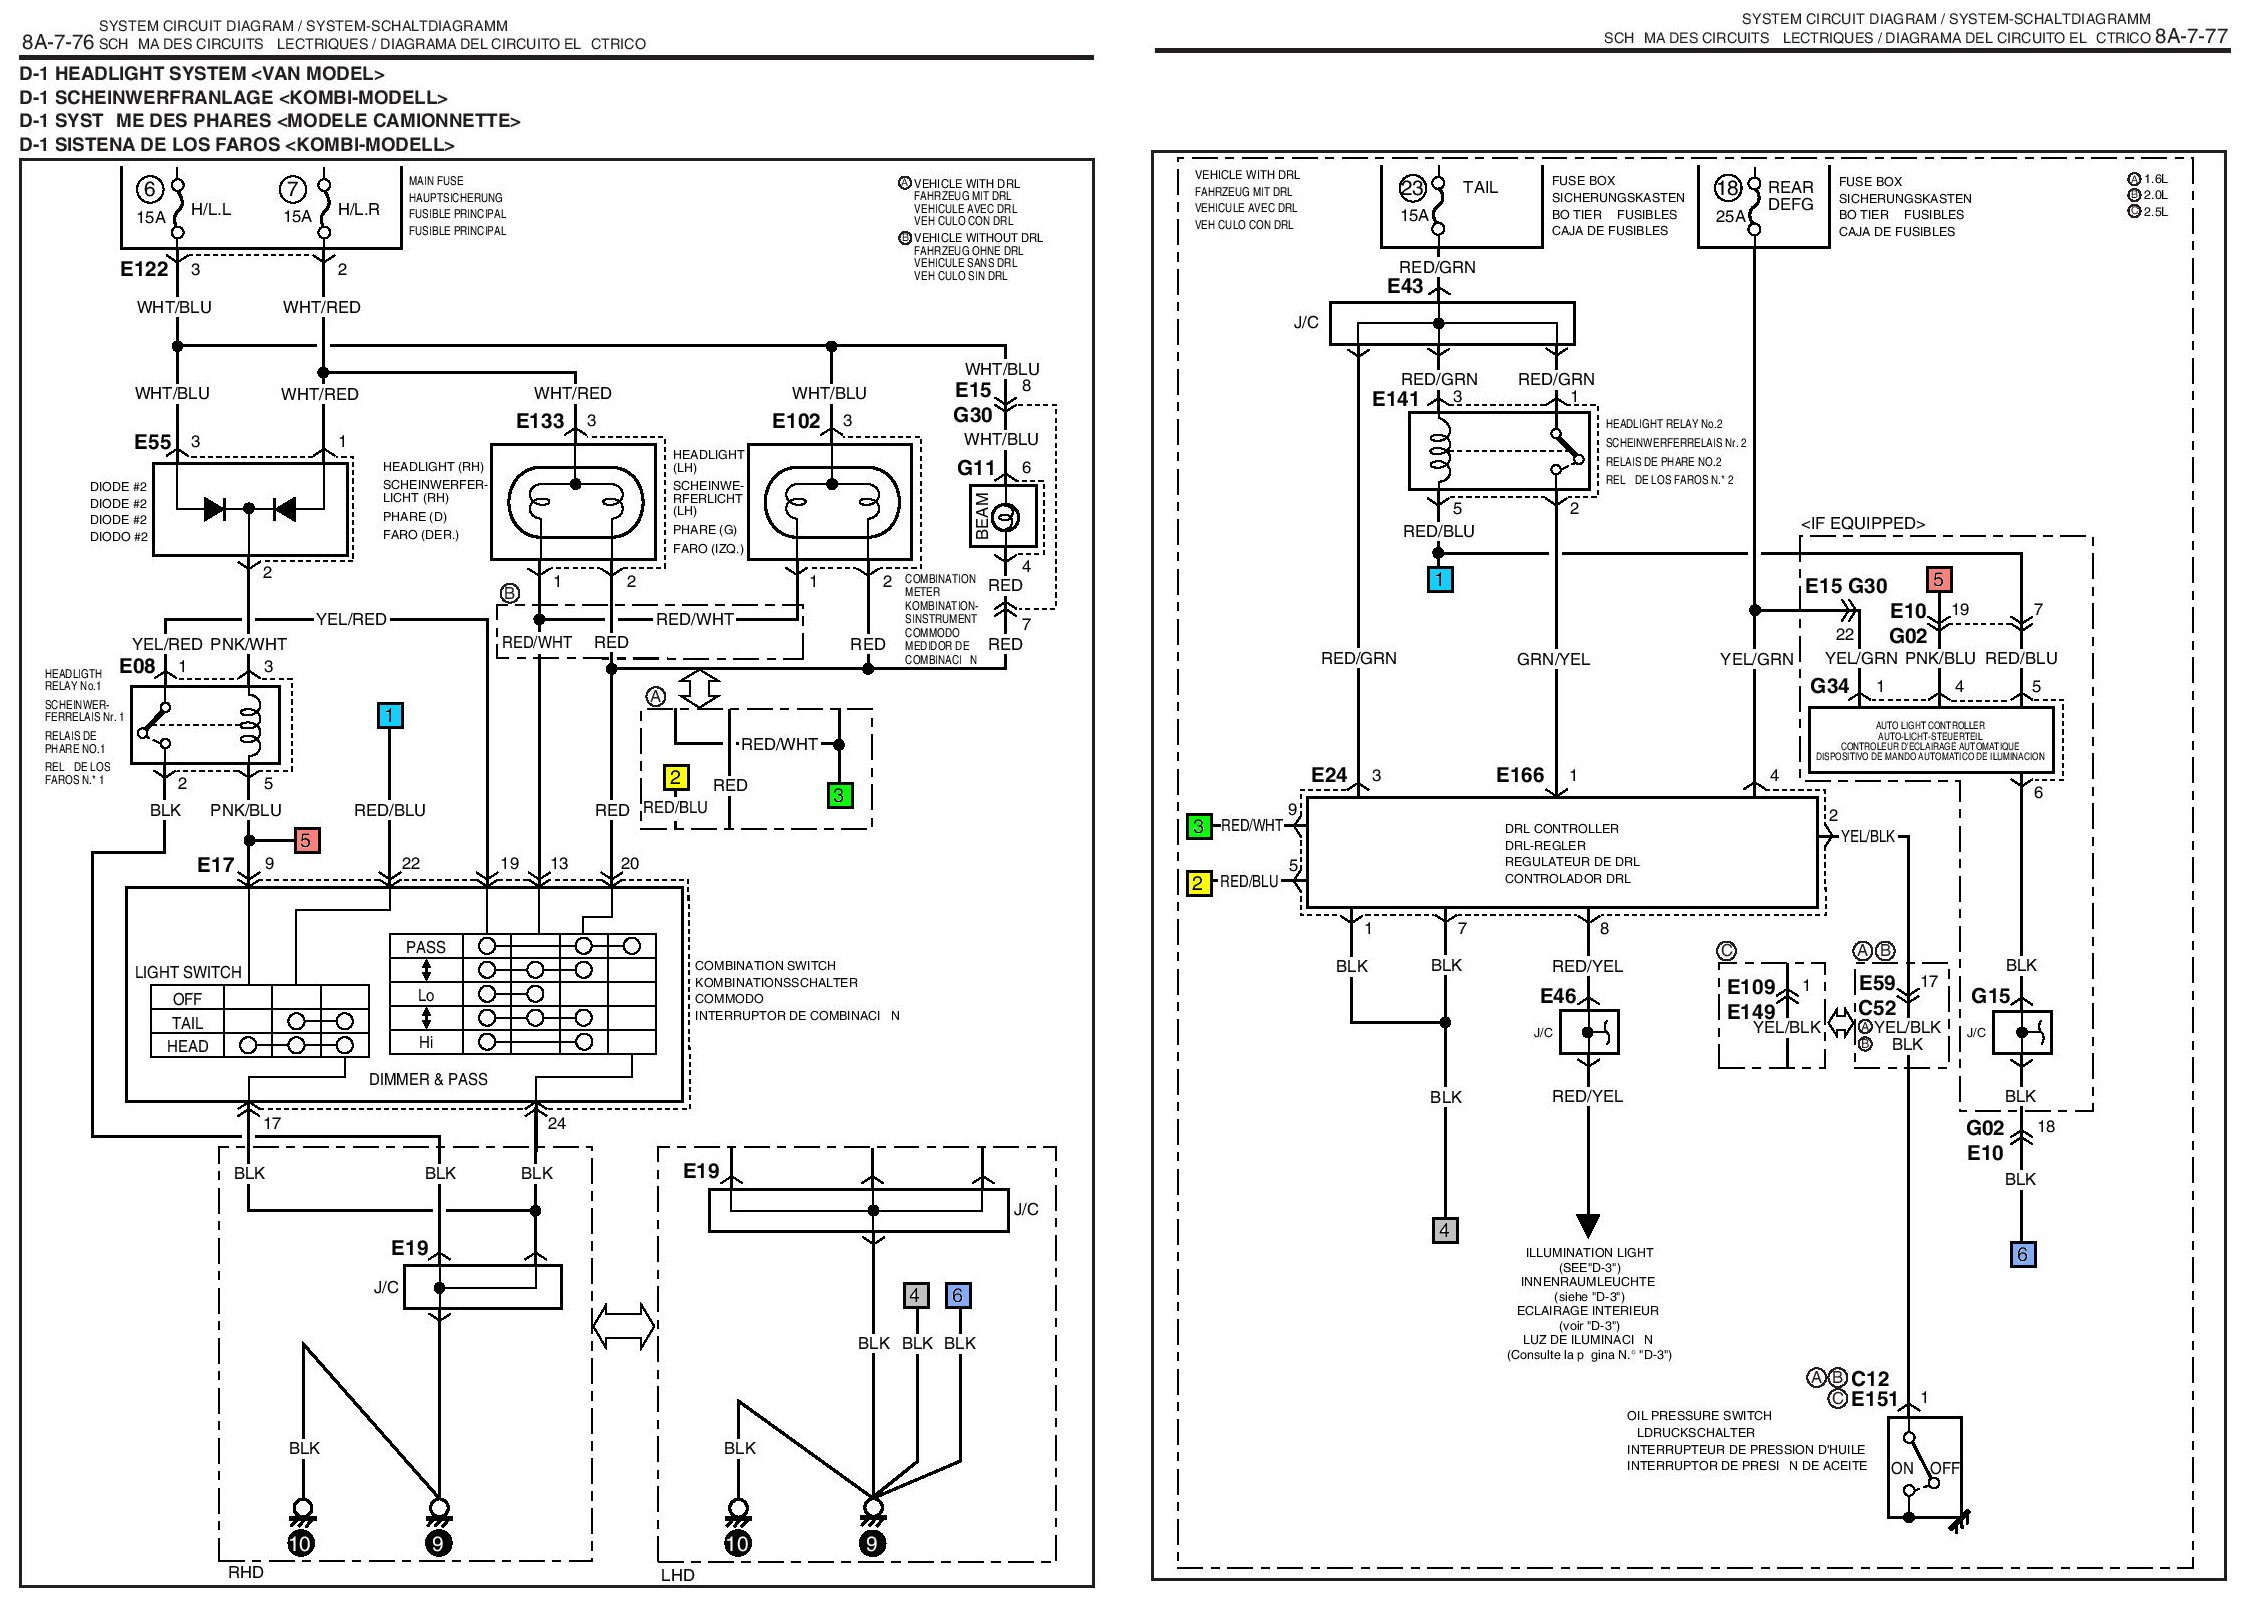 Suzuki Grand Vitara Exhaust System Diagram Wiring Schematics Diagram 2004  Suzuki XL7 Service Manual 2004 Suzuki Xl7 Exhaust Diagram